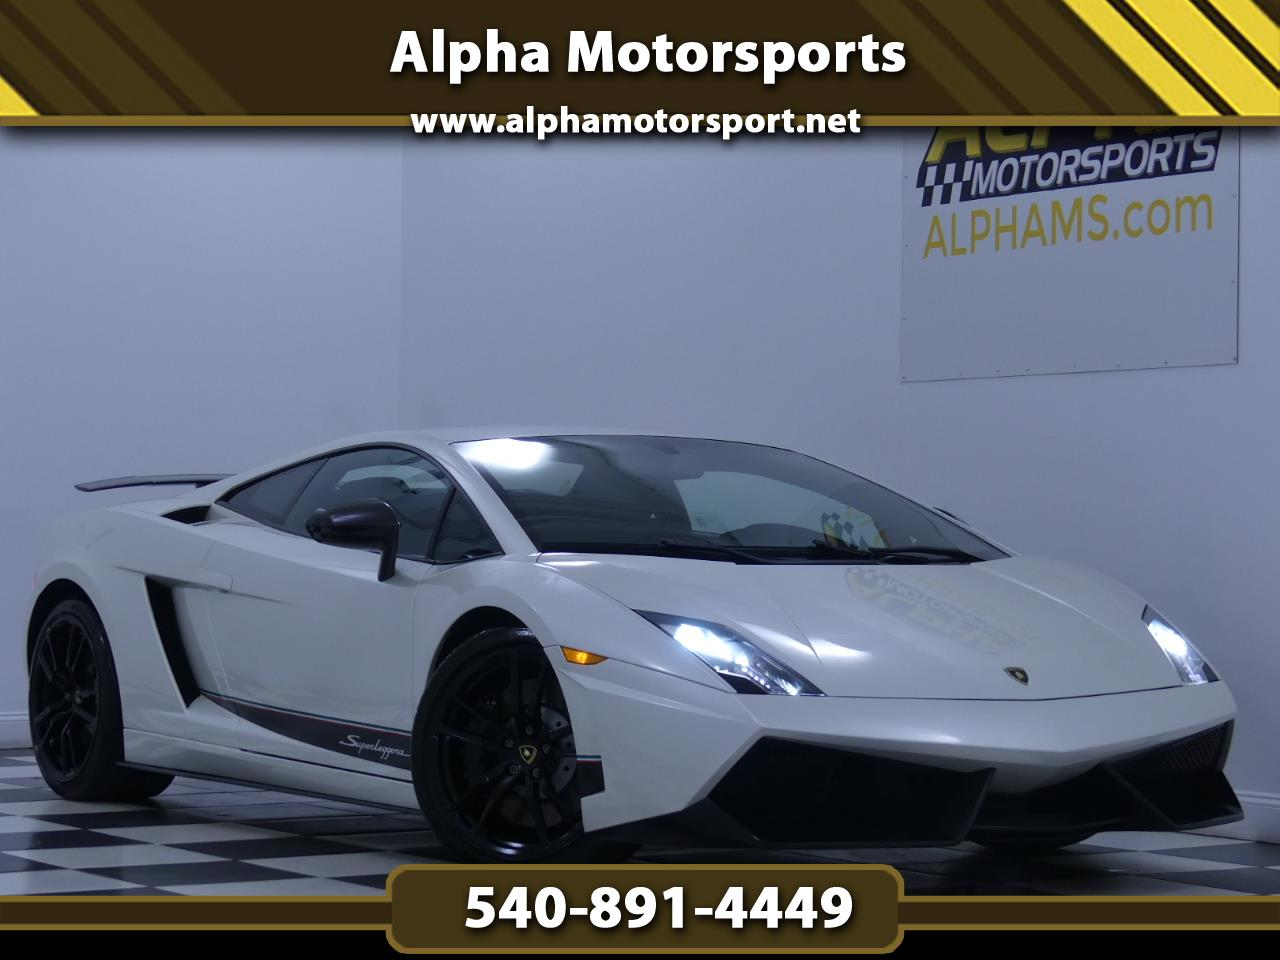 2012 Lamborghini Gallardo LP570-4 Superleggera